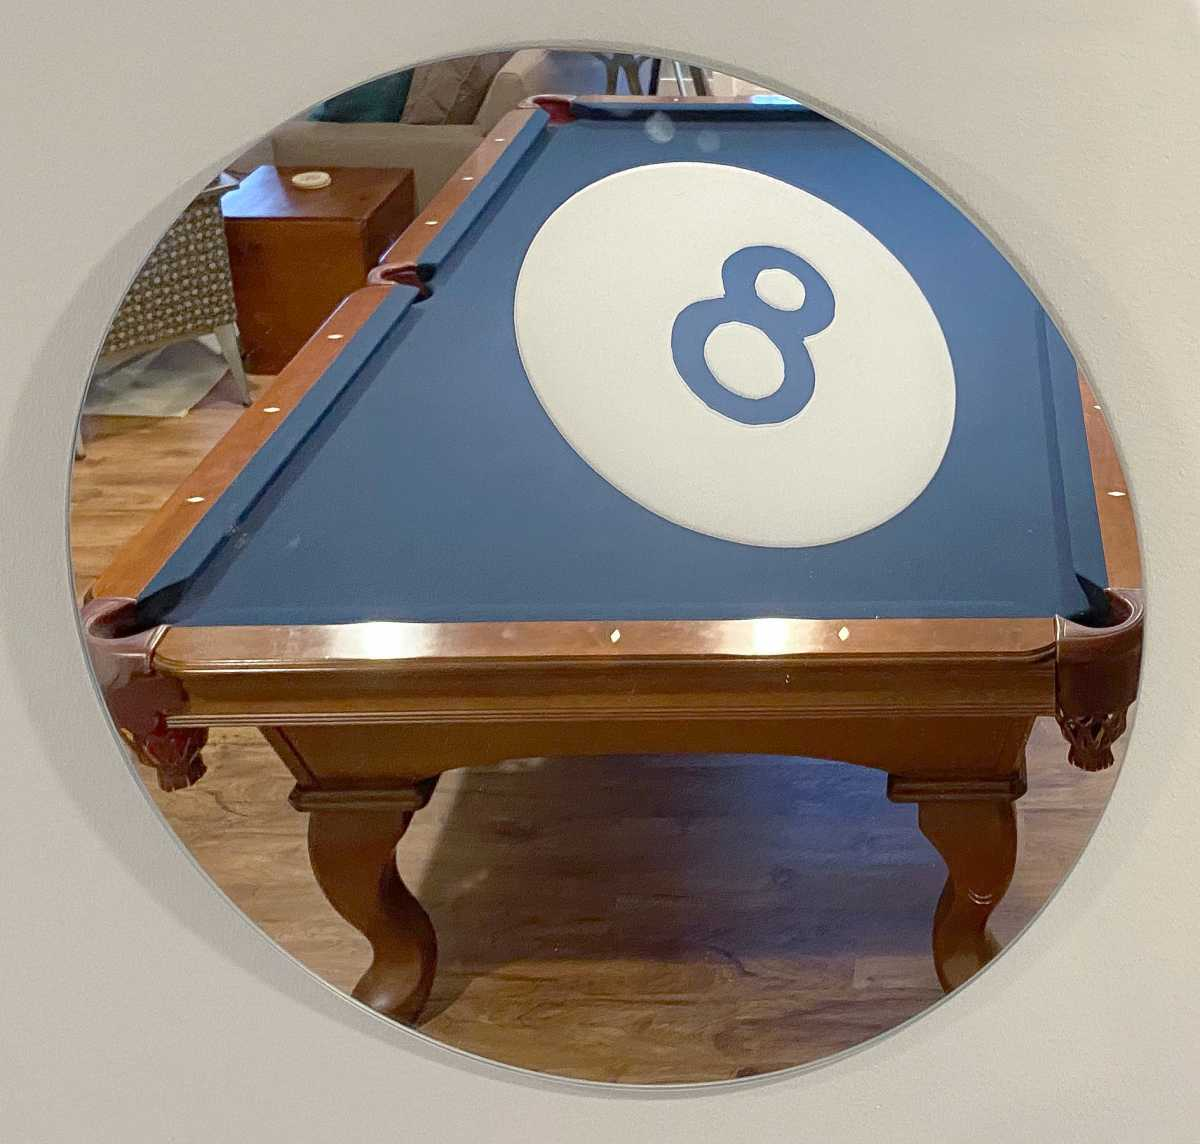 8 Ball Wall Mirror by Yarbough Design